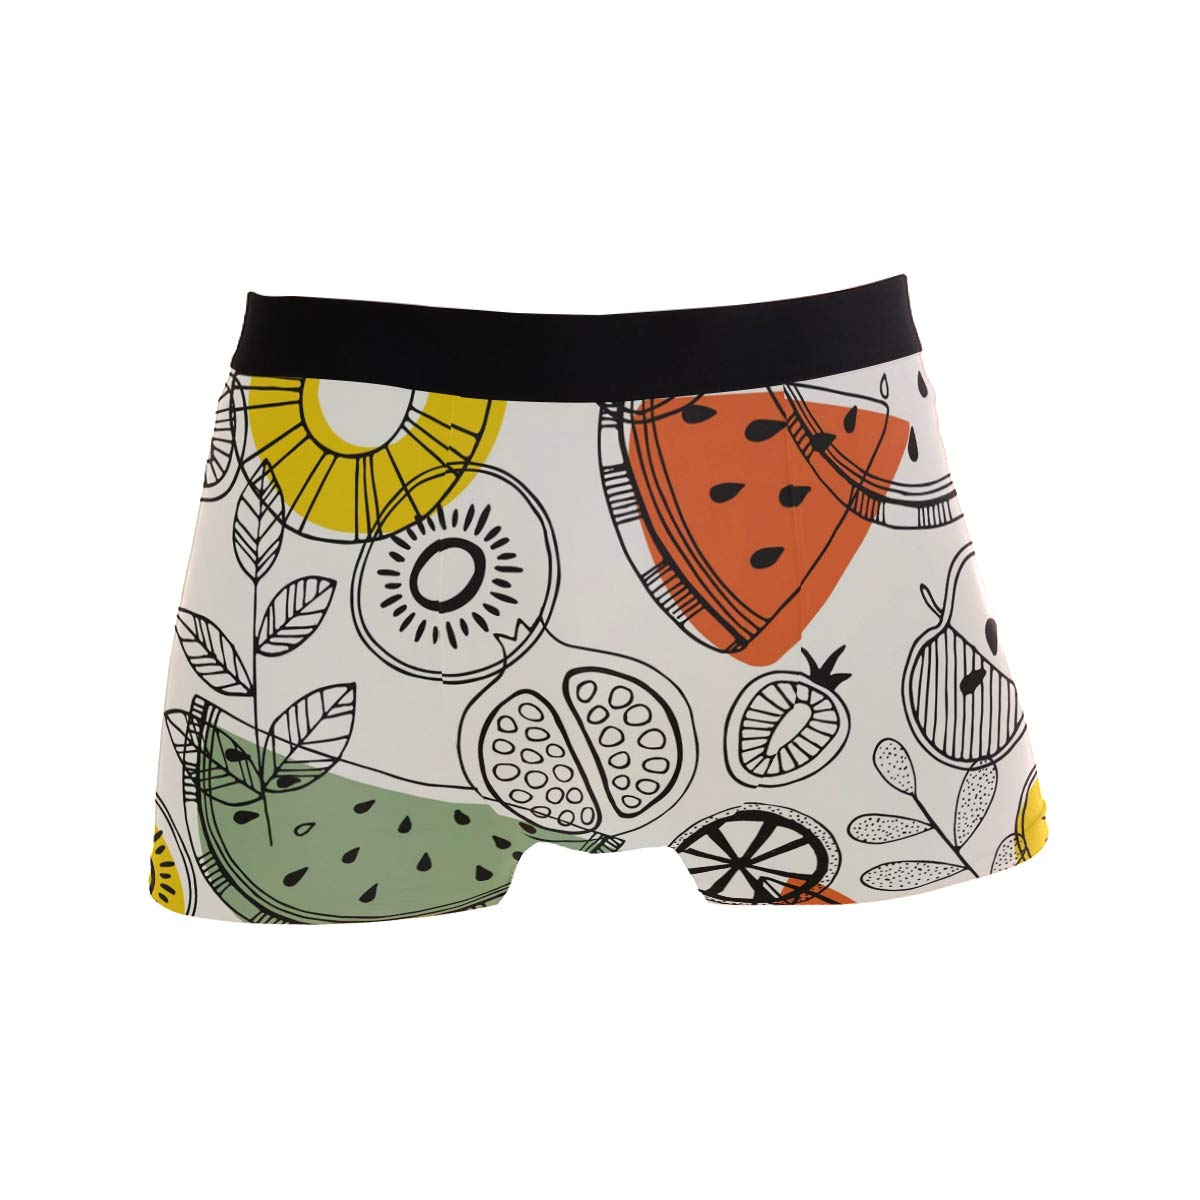 61c77846e212 Mkuell Fruit Melon Comfortable Men's Boxer Briefs Multi-Size Soft Underwear  S at Amazon Men's Clothing store: